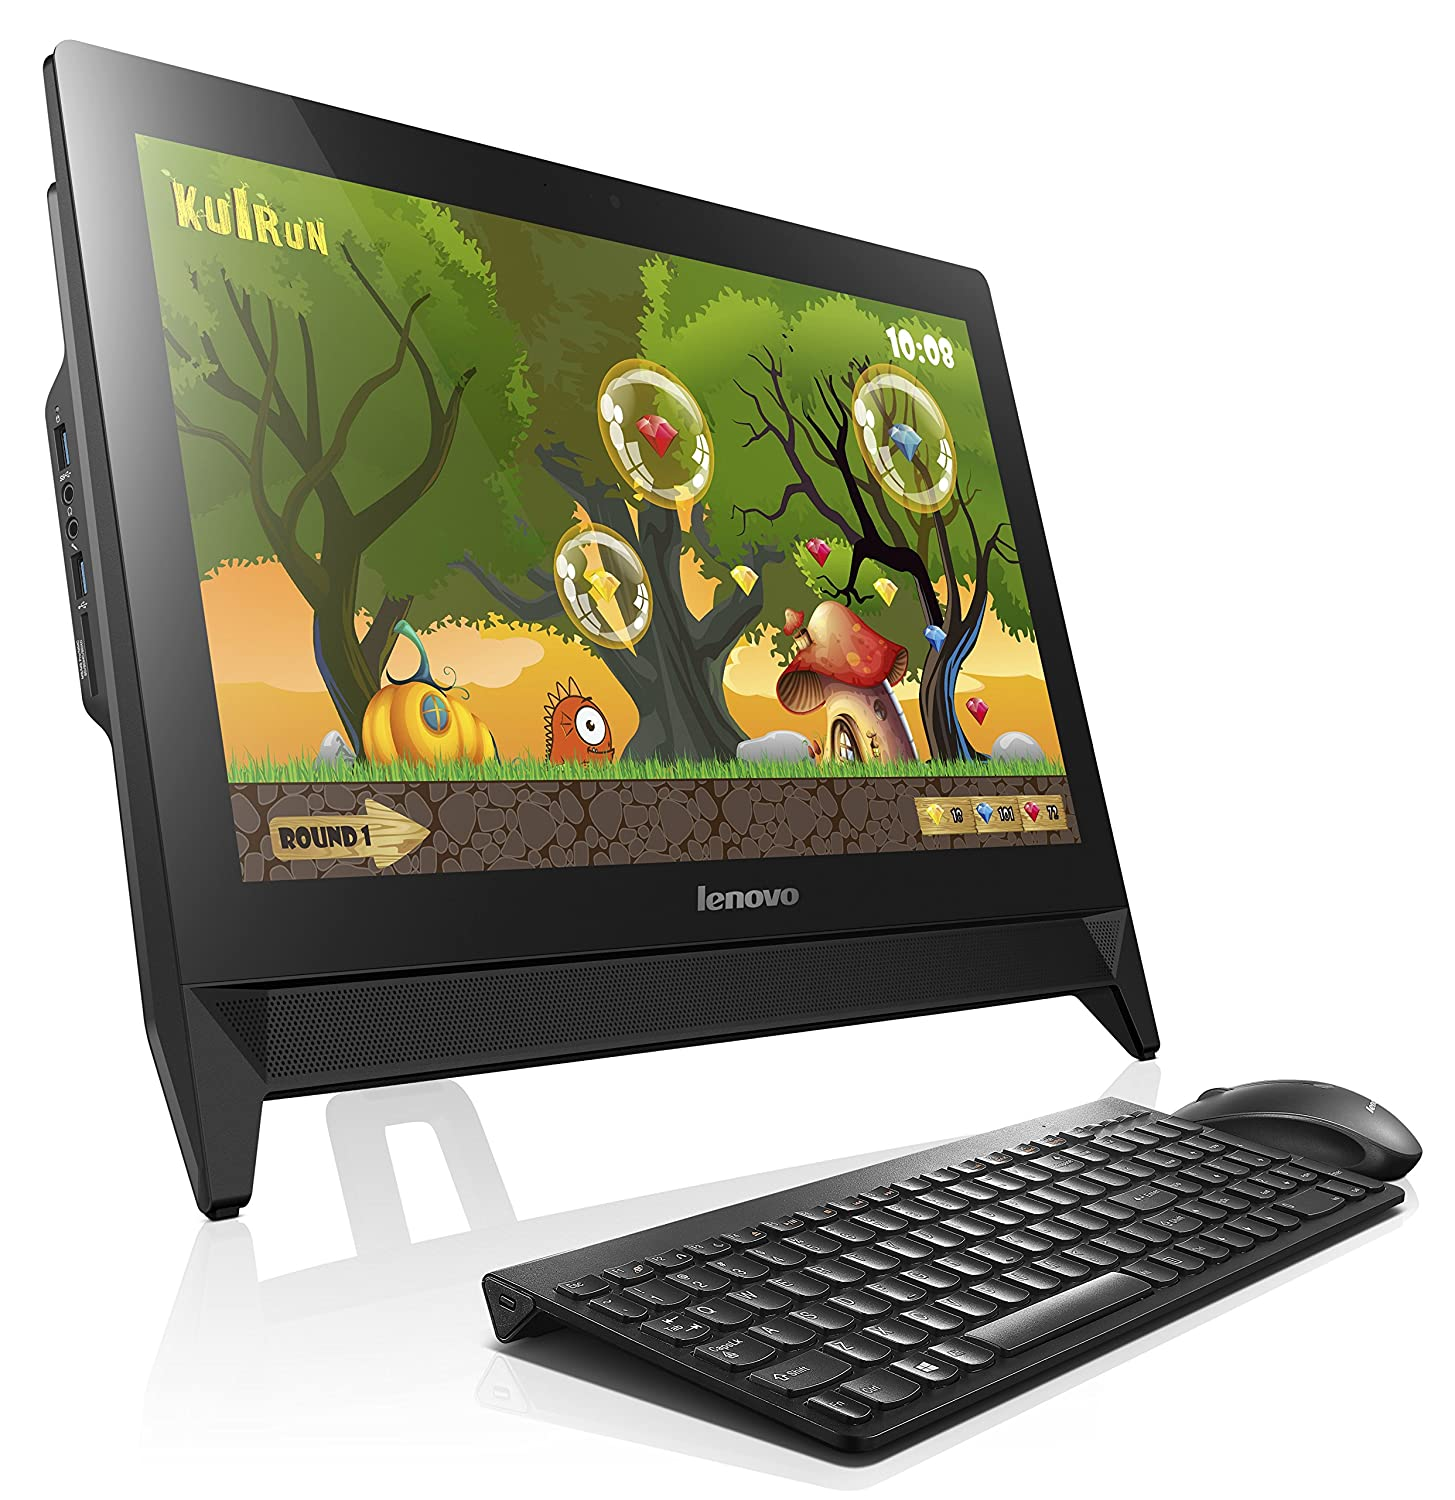 all-in-one pc | Lenovo c20